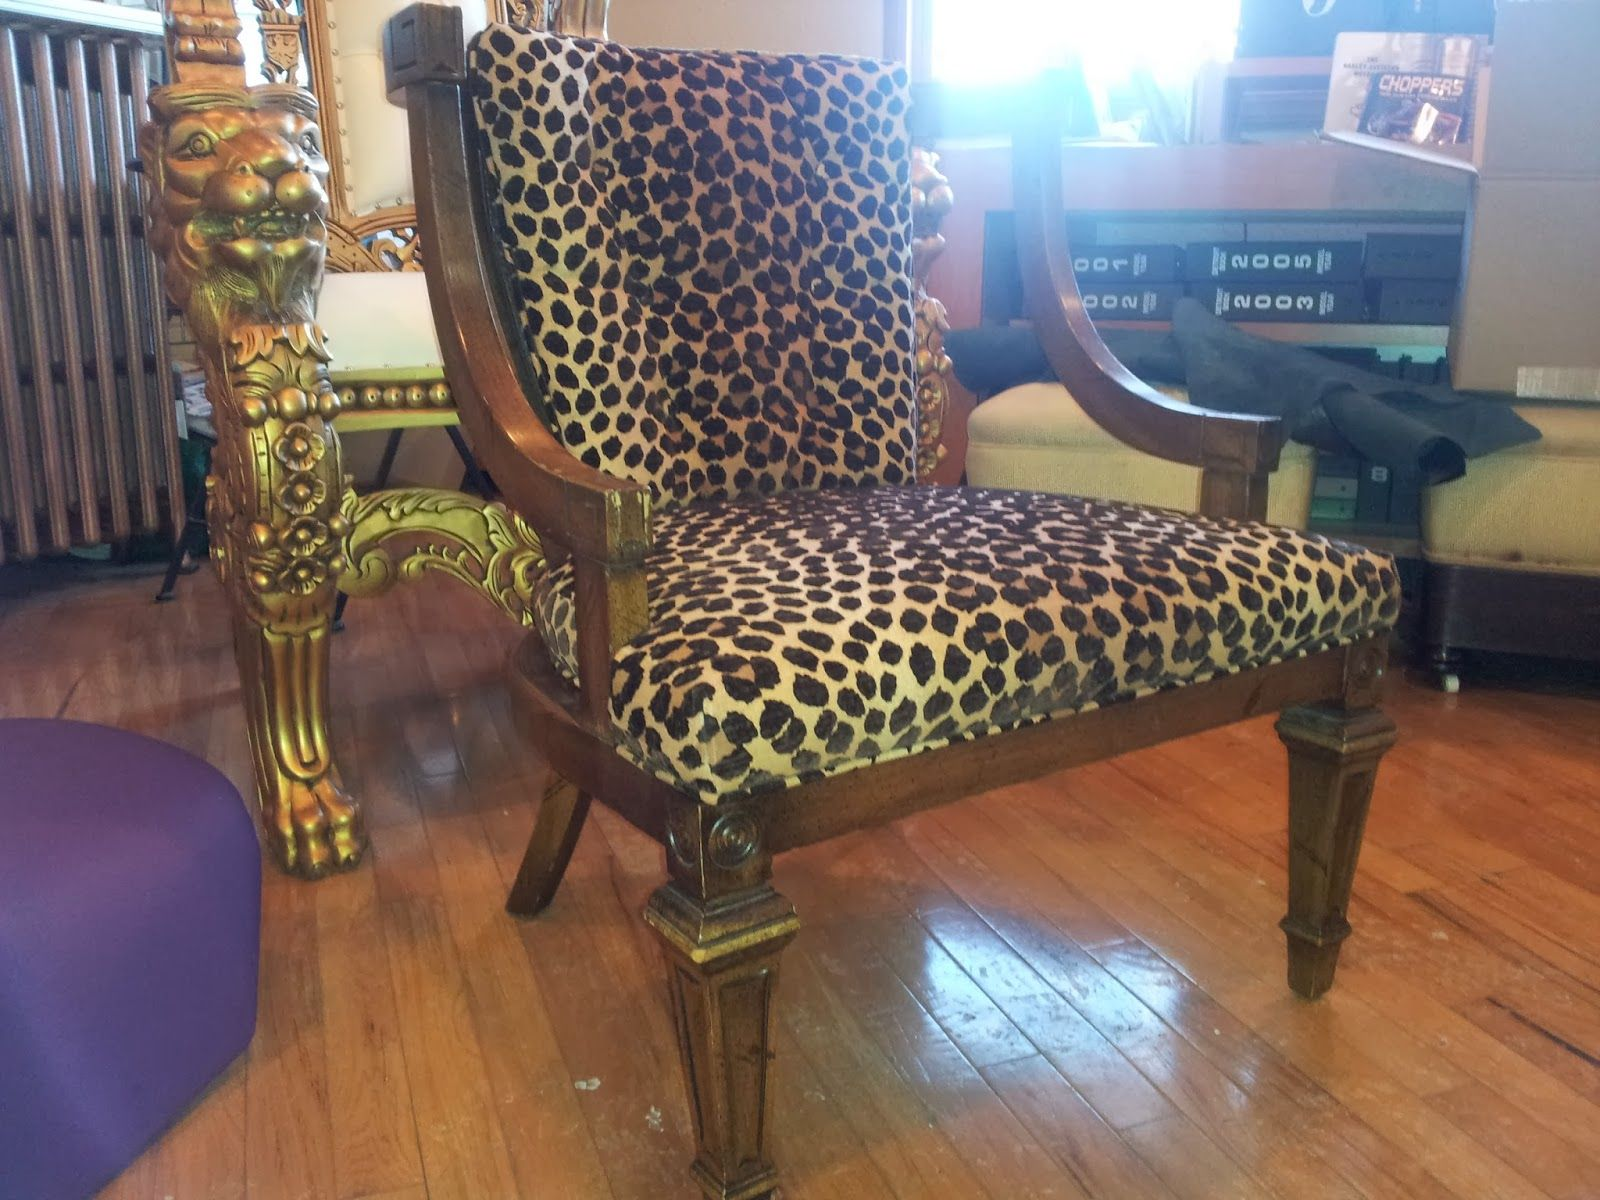 chair recovered with cheetah print velvet homestyle 11394 | 4af111040fdb915635d133ef65d9eaf8